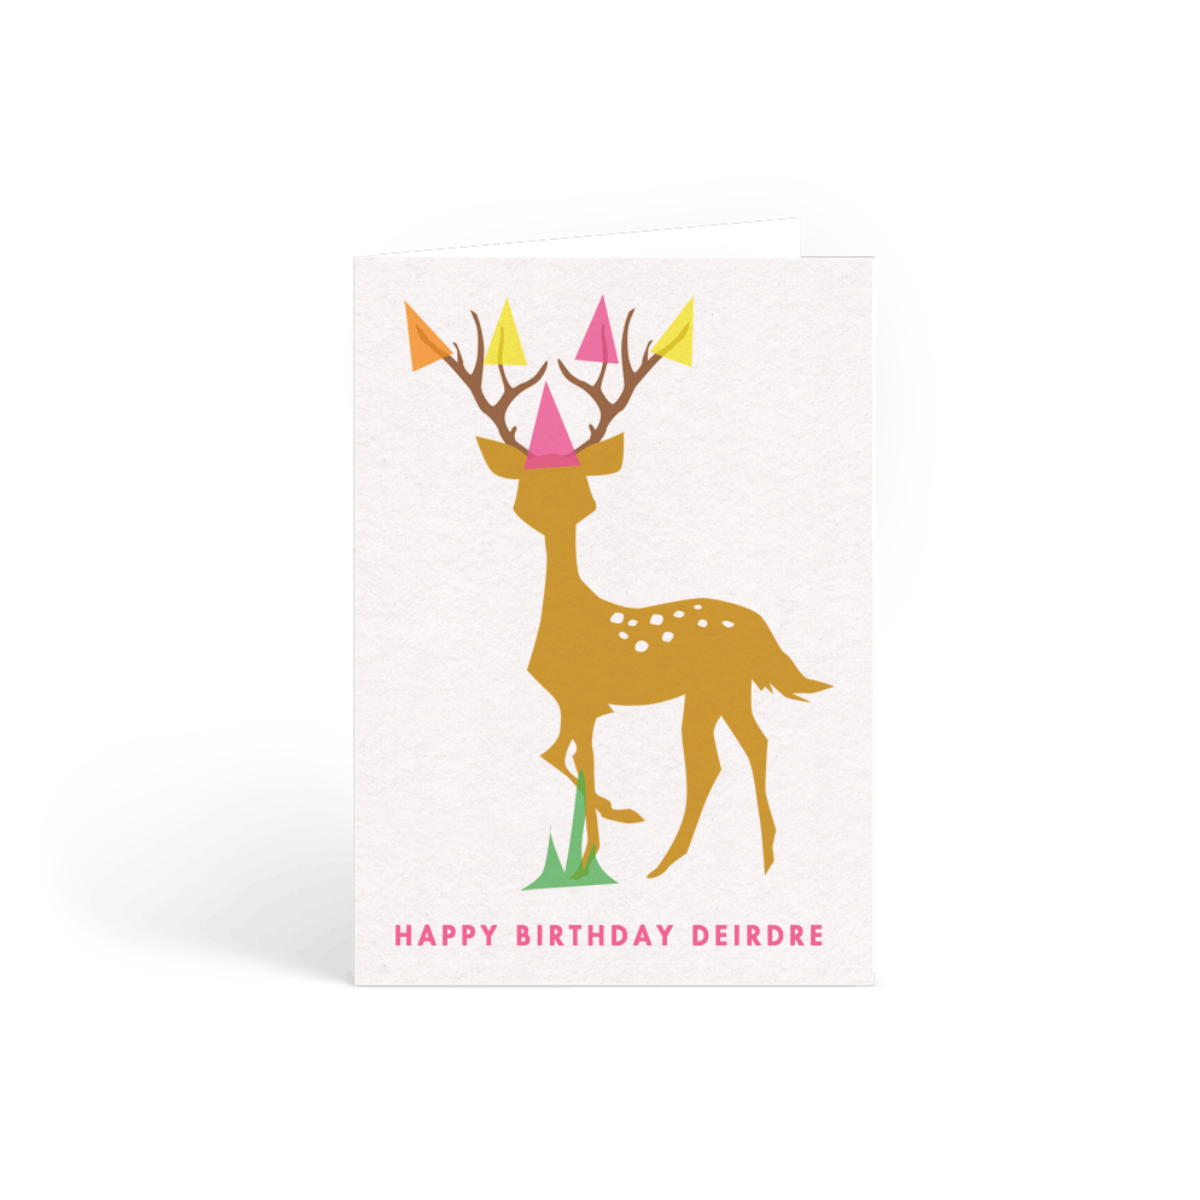 Https%3a%2f%2fwww.papier.com%2fproduct image%2f483%2f2%2fbirthday deer 130 front 1453909315.png?ixlib=rb 1.1